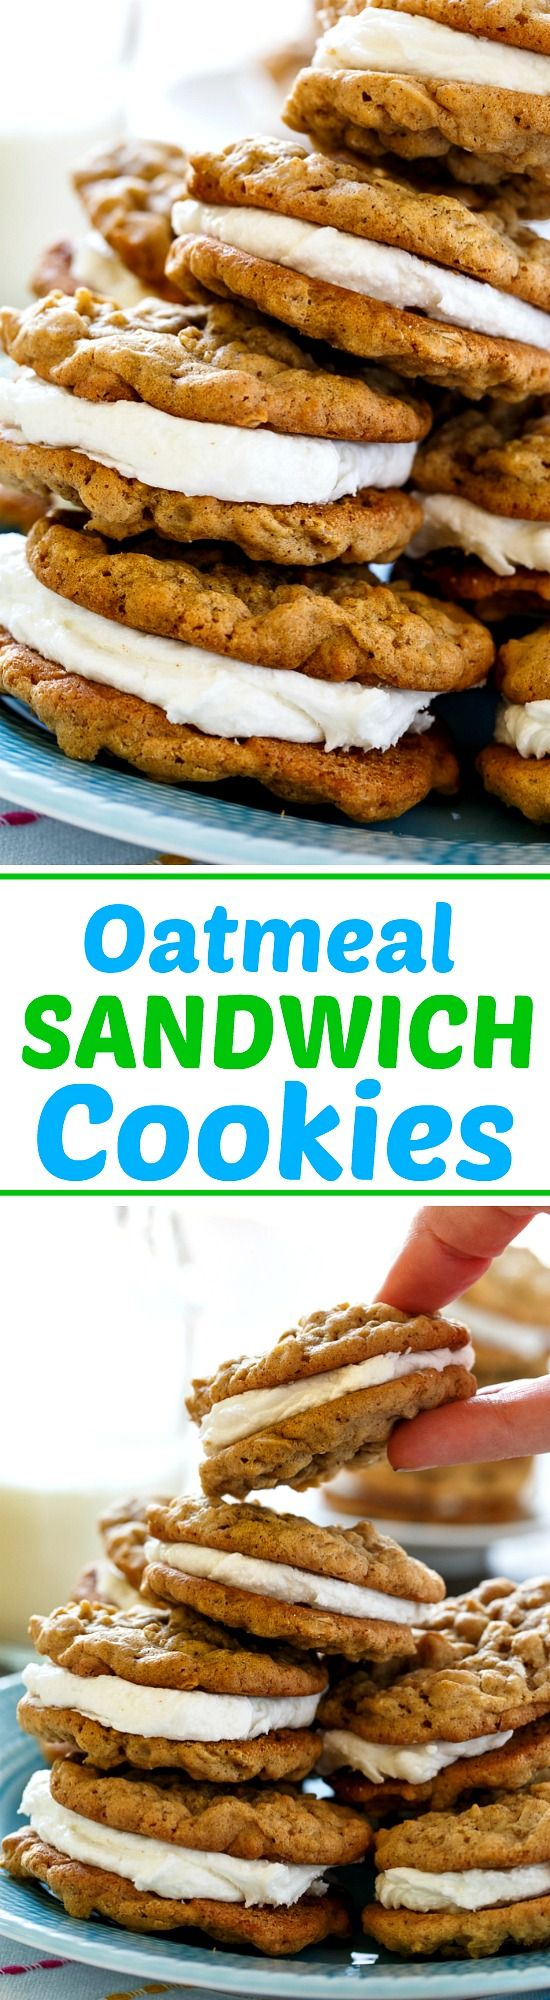 Oatmeal Sandwich Cookies have a creamy, thick marshmallow filling sandwiched between 2 chewy , but soft oatmeal cookies.